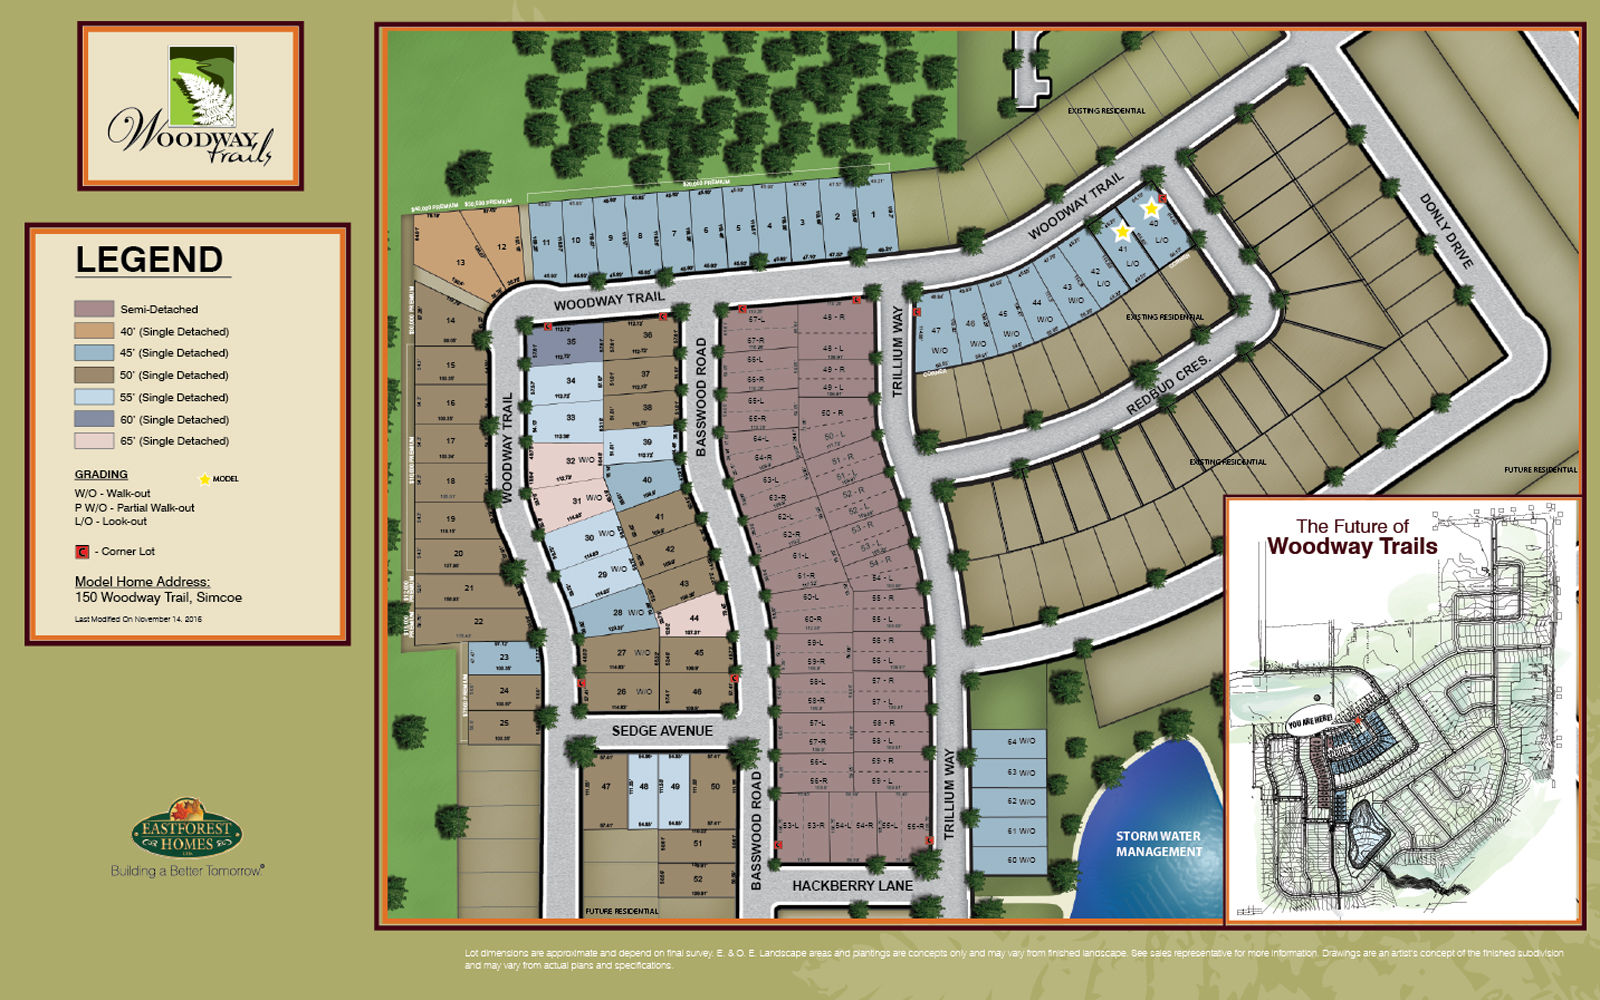 Site plan for Woodway Trails in Simcoe, Ontario